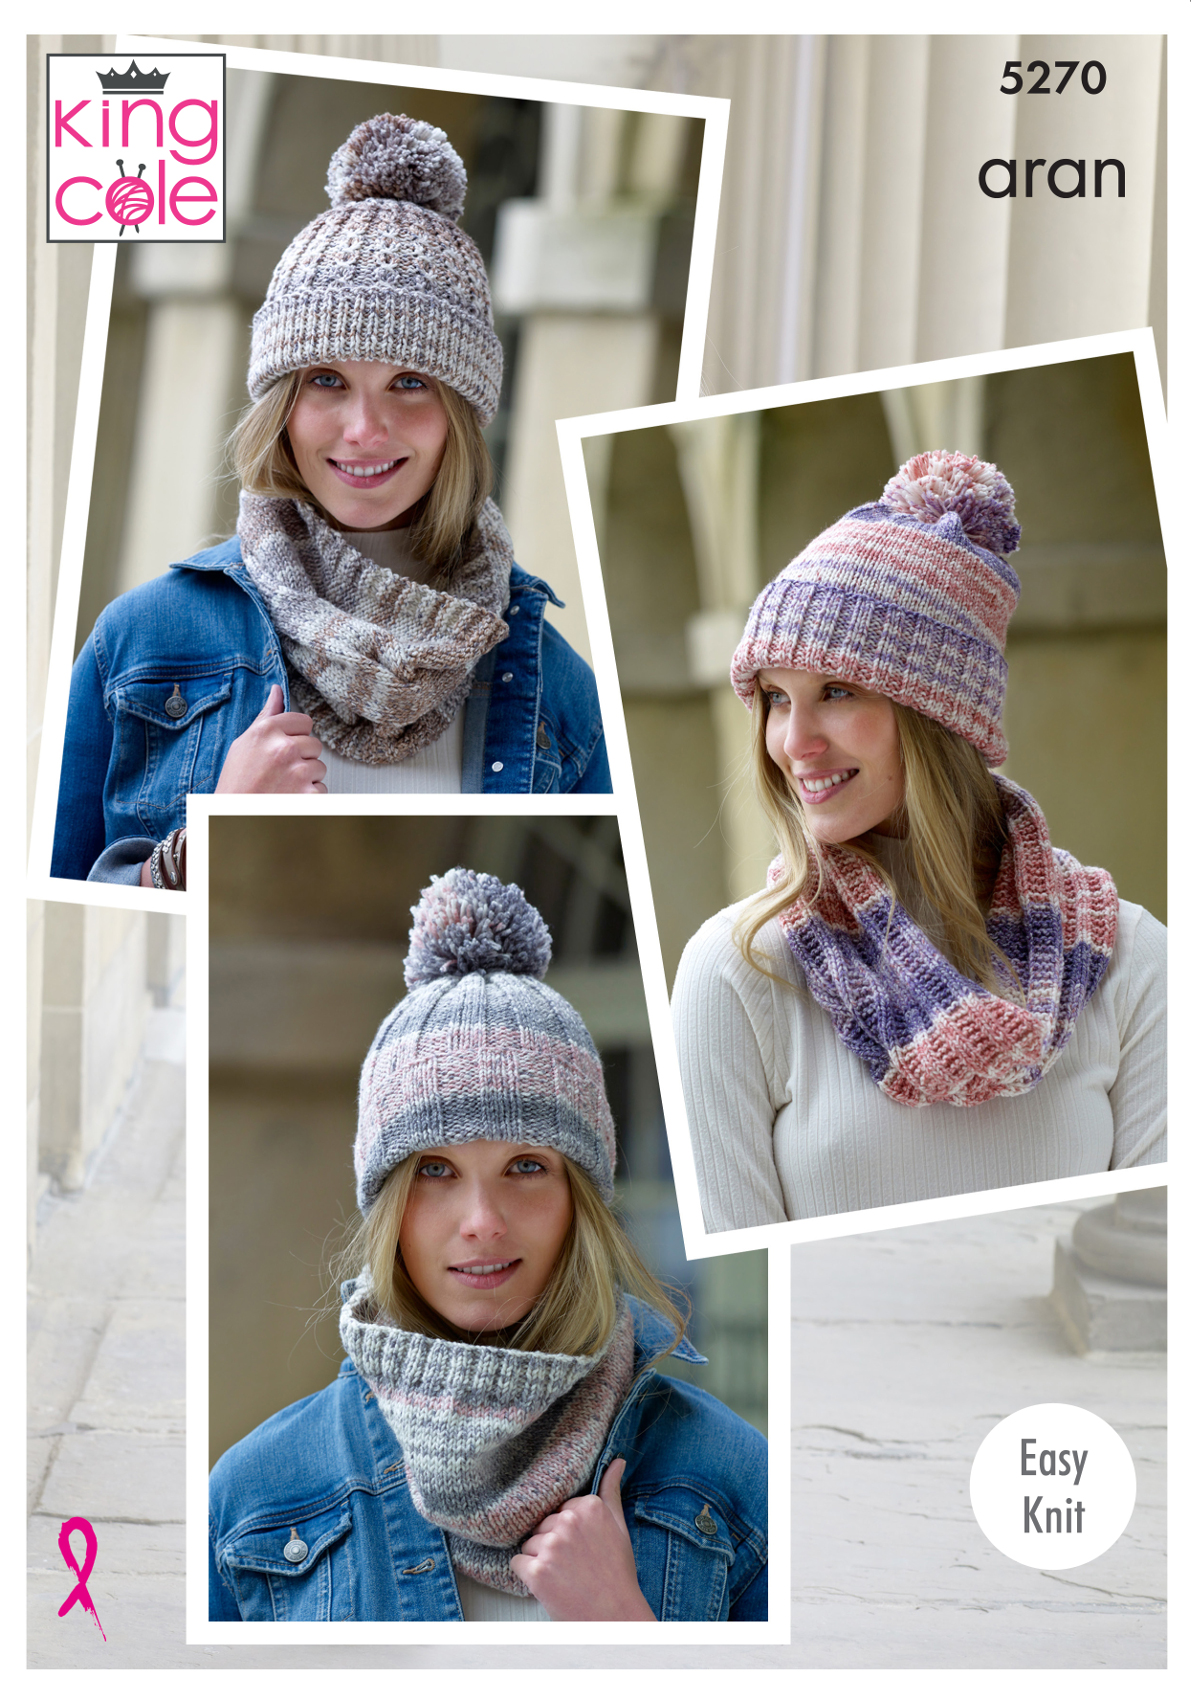 Easy Knit Womens Snoods   Hats Ladies Knitting Pattern King Cole Aran 5270 fe75a15c350